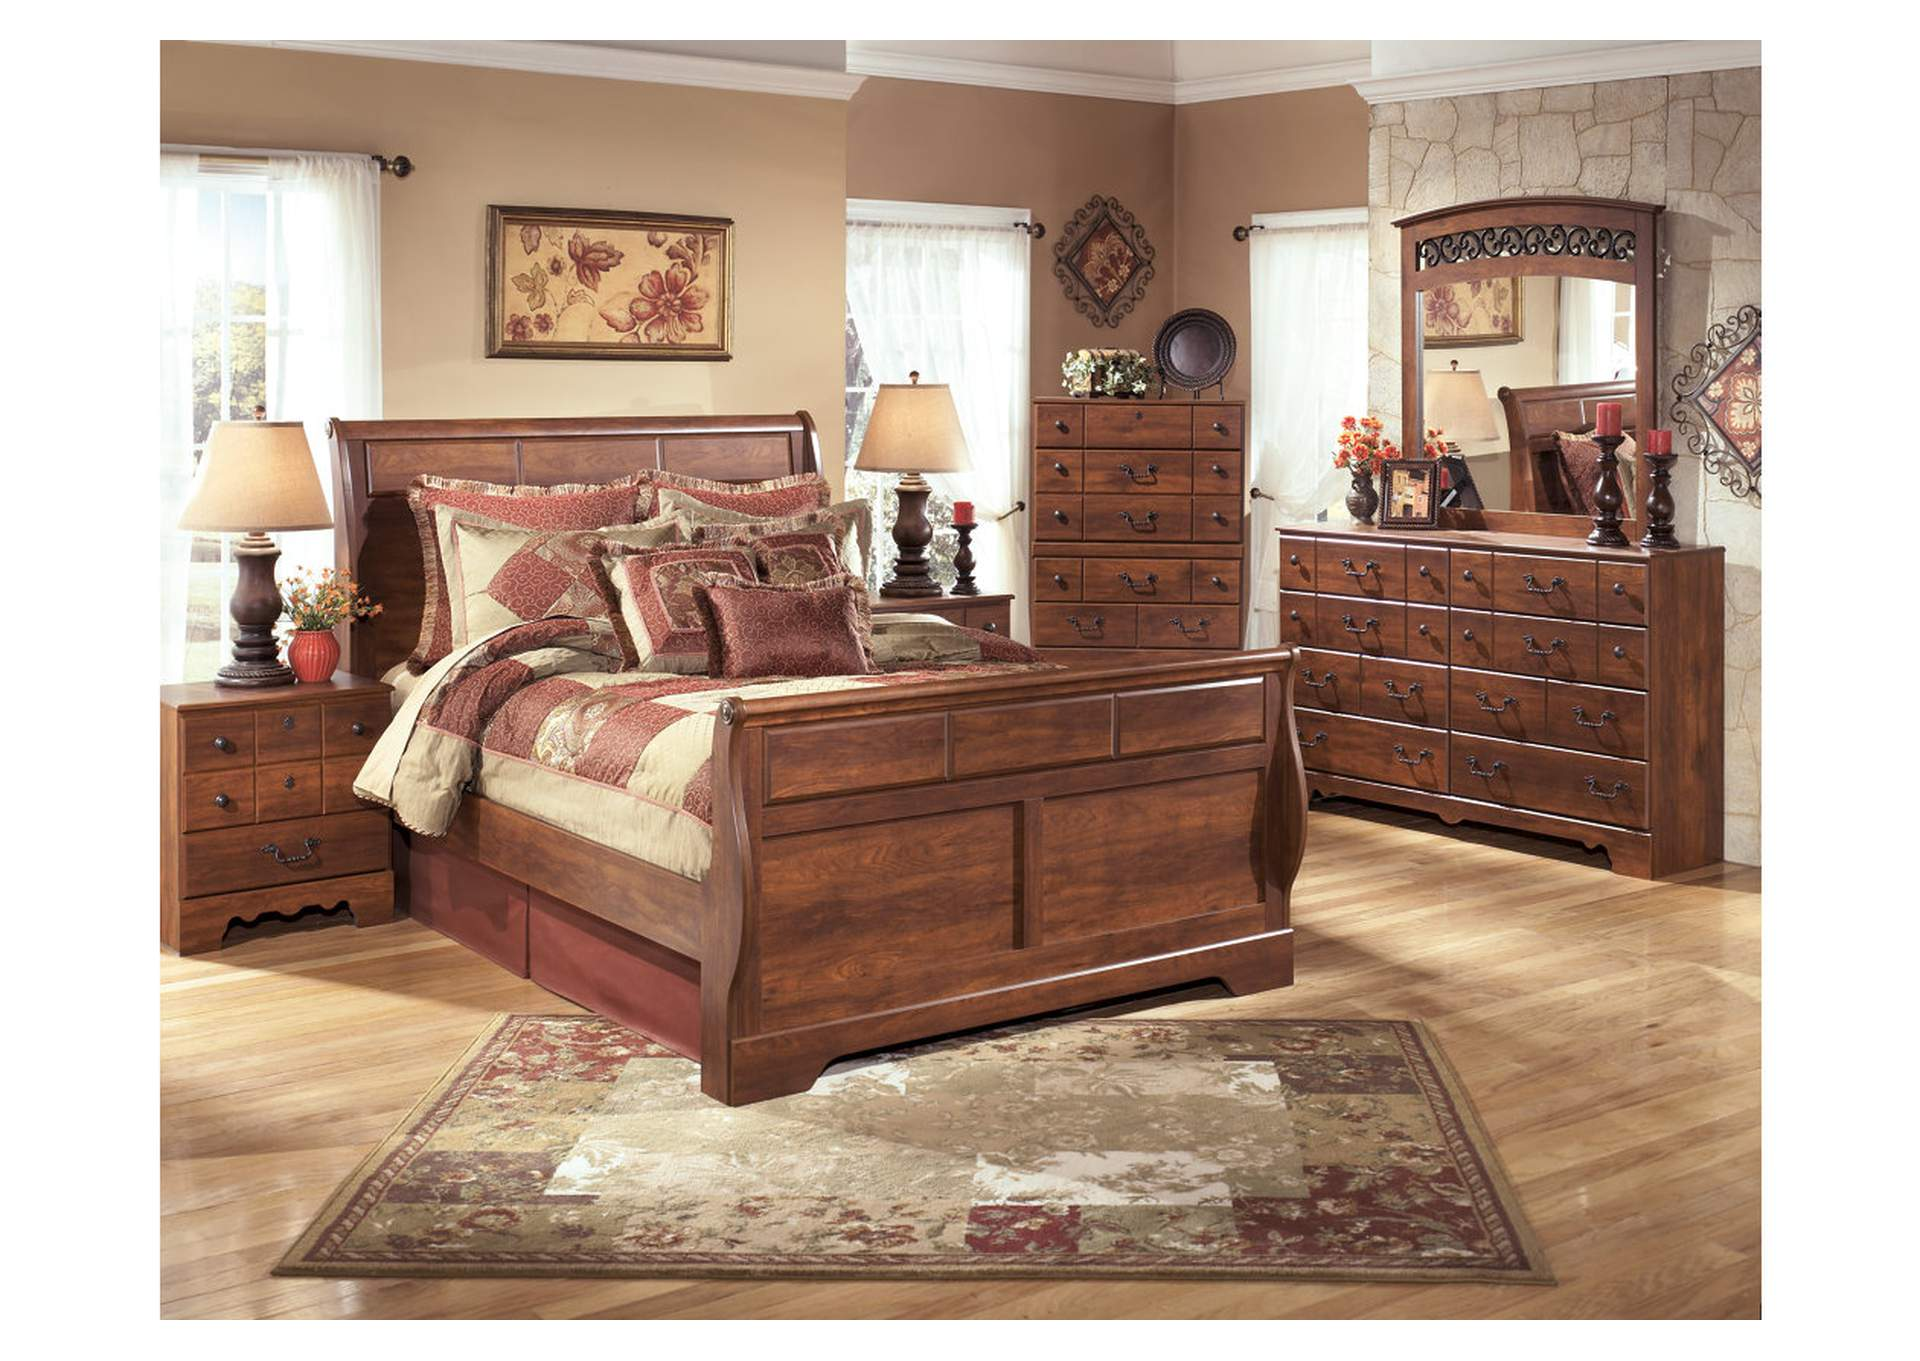 Harlem Furniture Timberline Queen Sleigh Bed Dresser Mirror Chest Night Stand